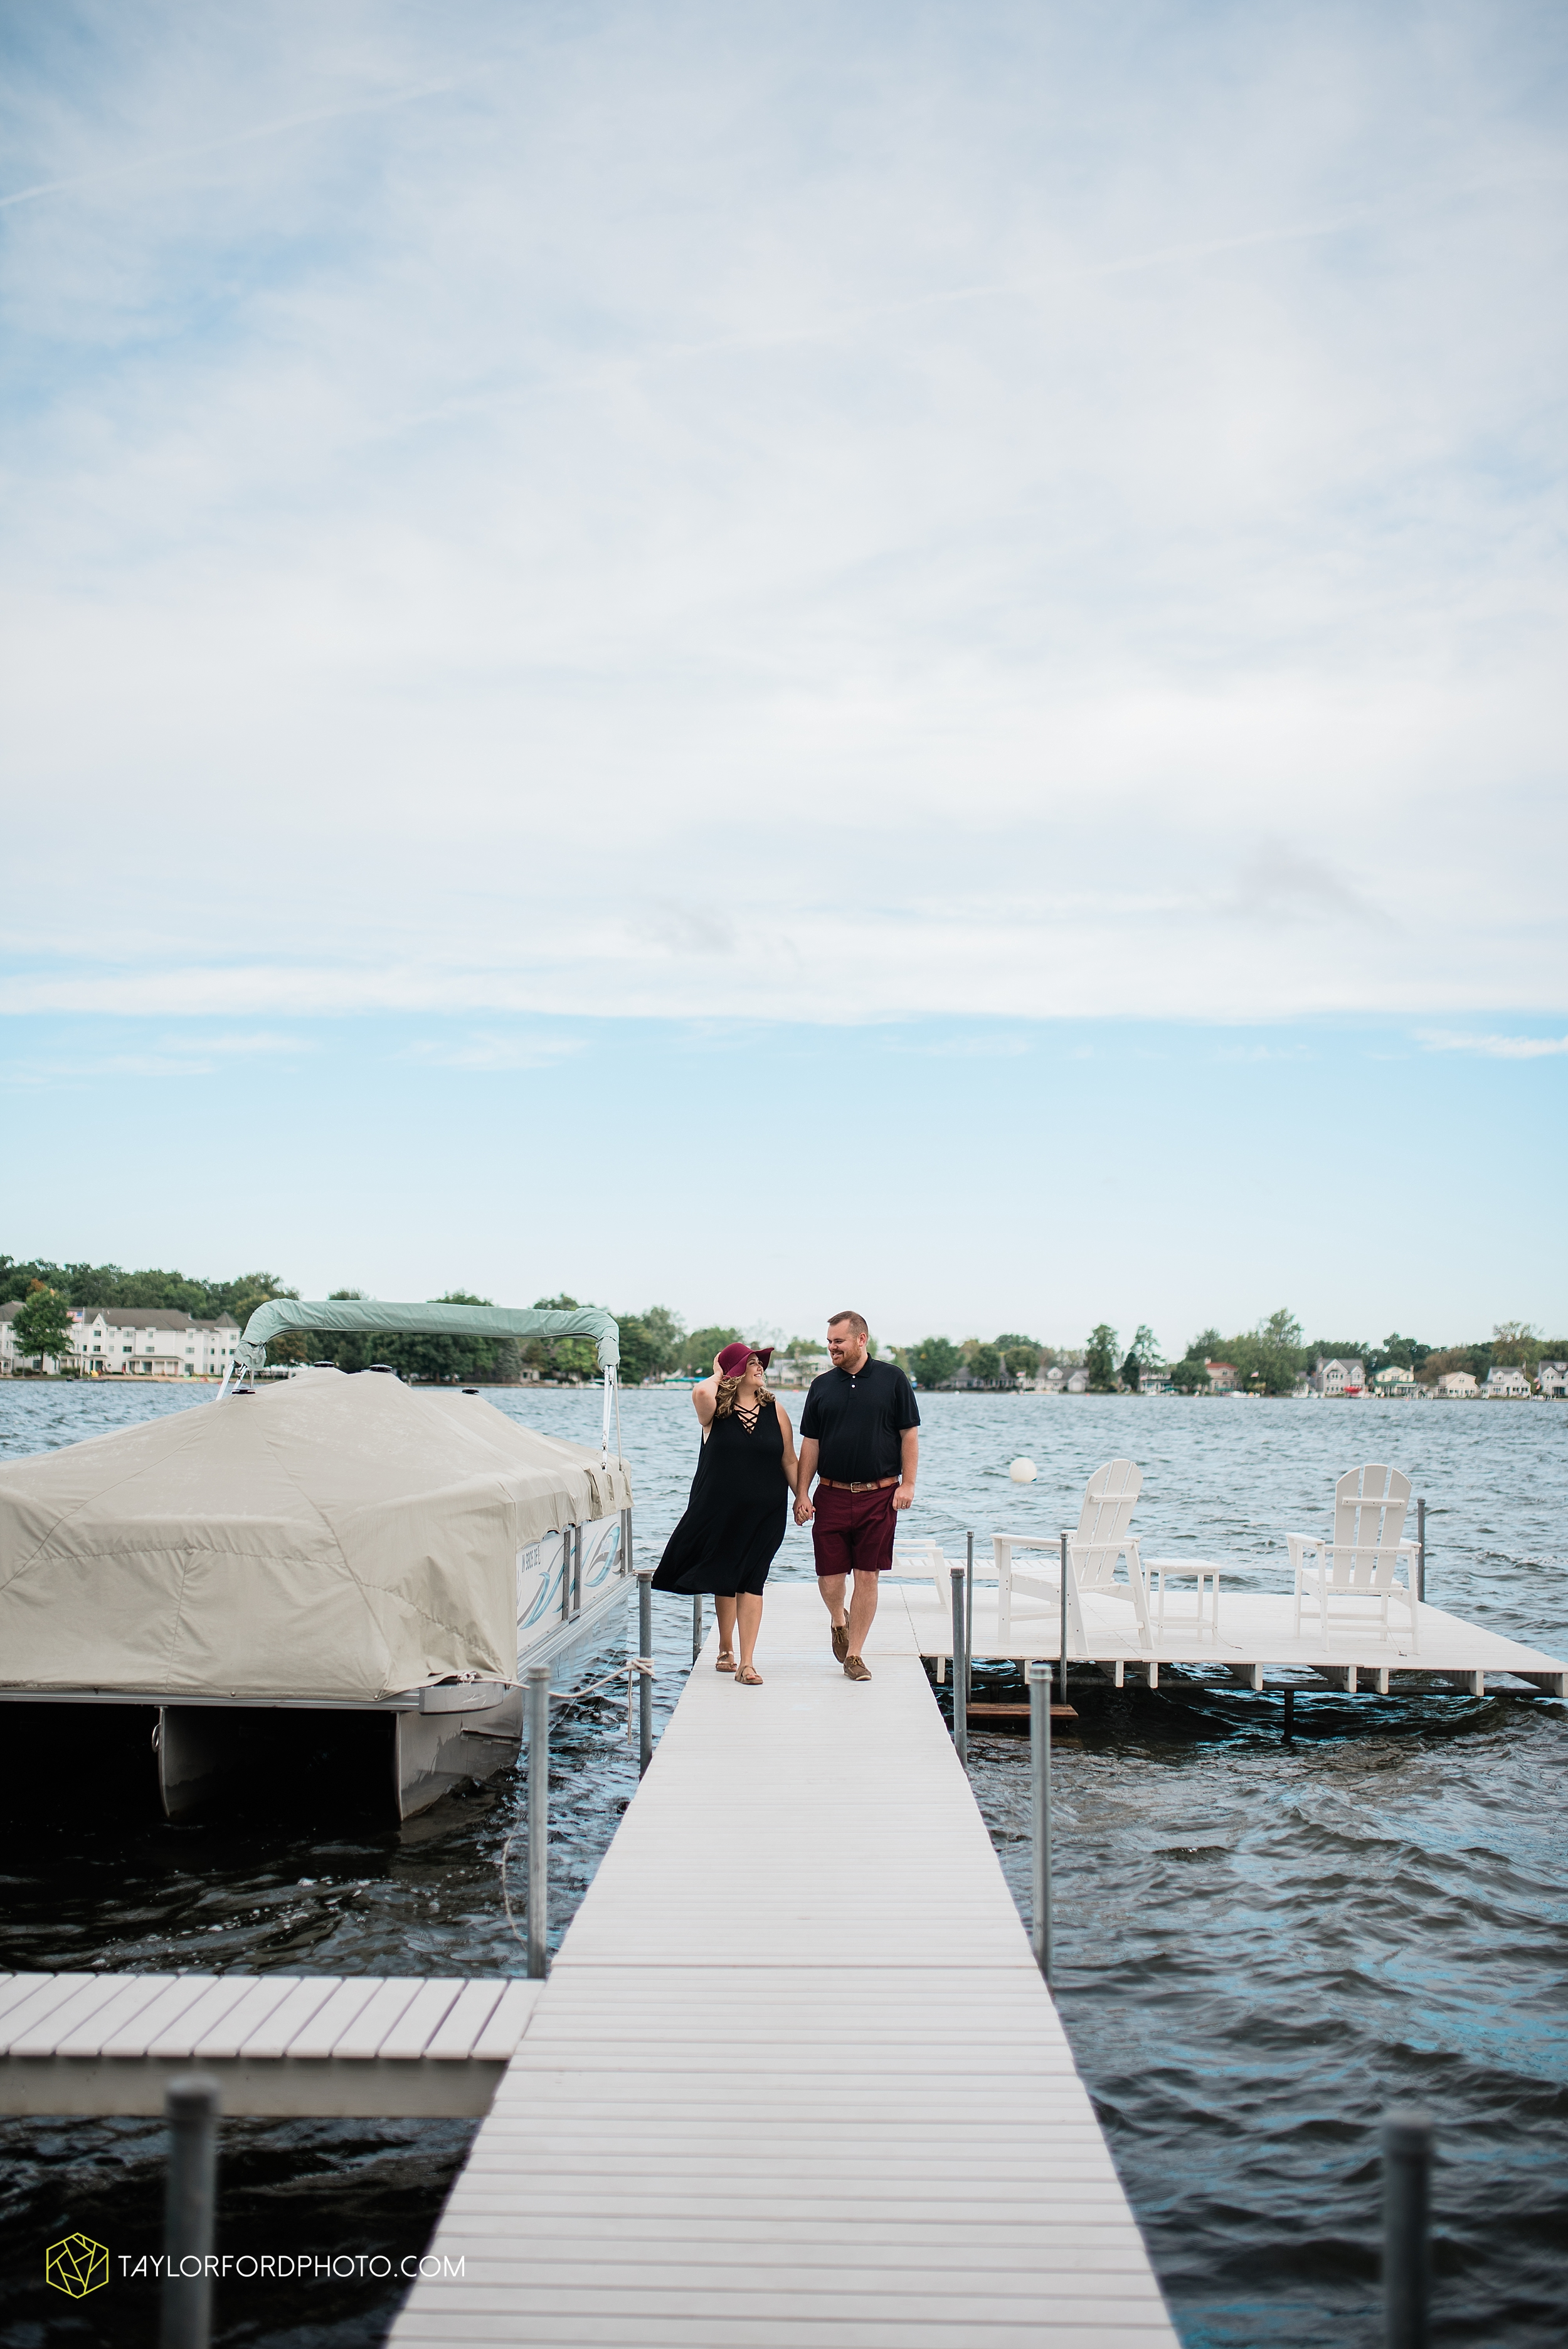 lake-wawasee-conklin-bay-lifestyle-family-september-late-fall-photographer-taylor-ford-photography_0609.jpg